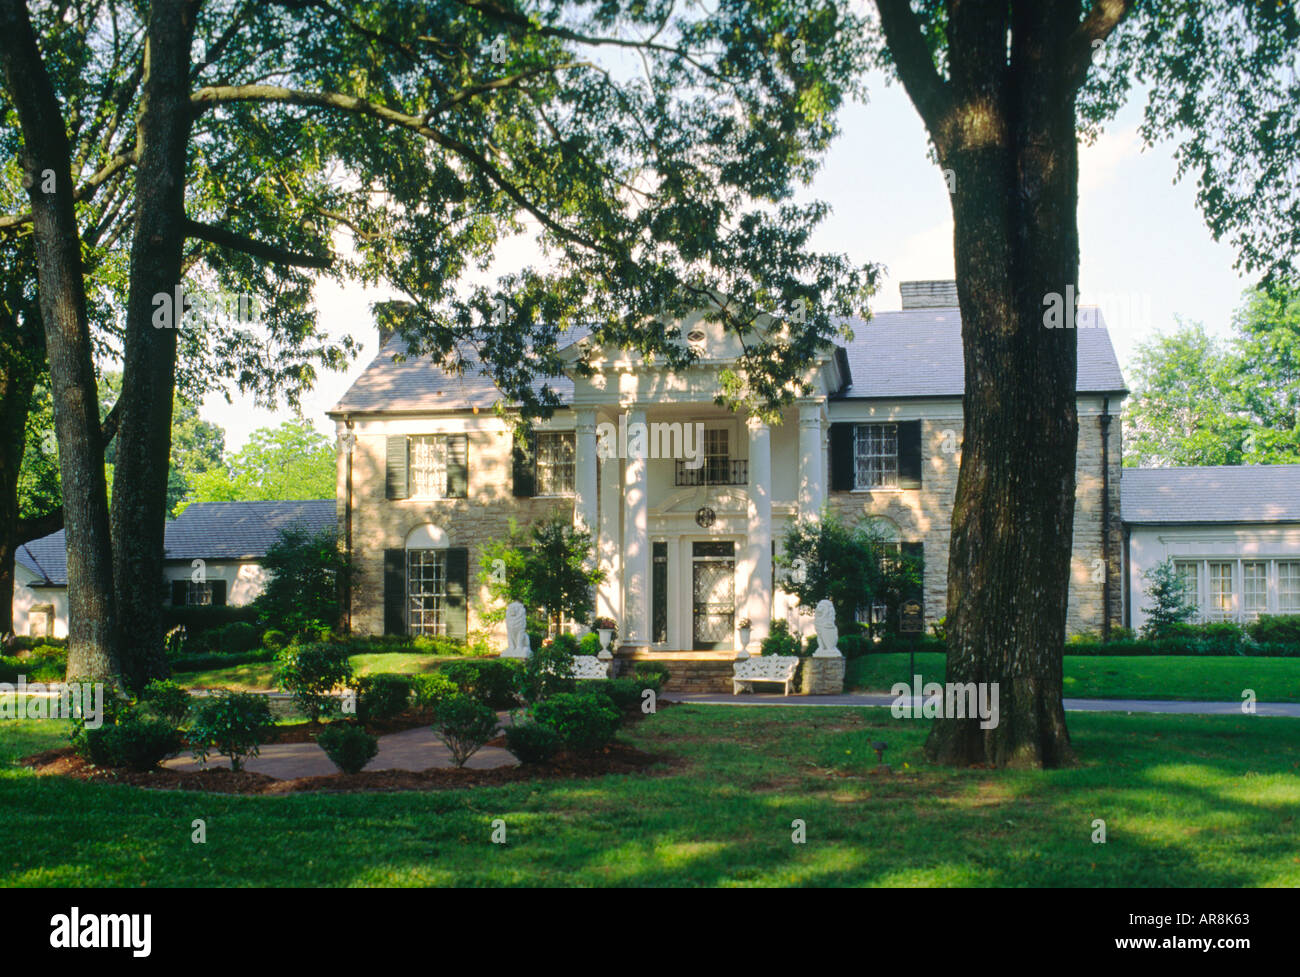 Graceland, home of Elvis Presley. Memphis, Tennessee, USA - Stock Image